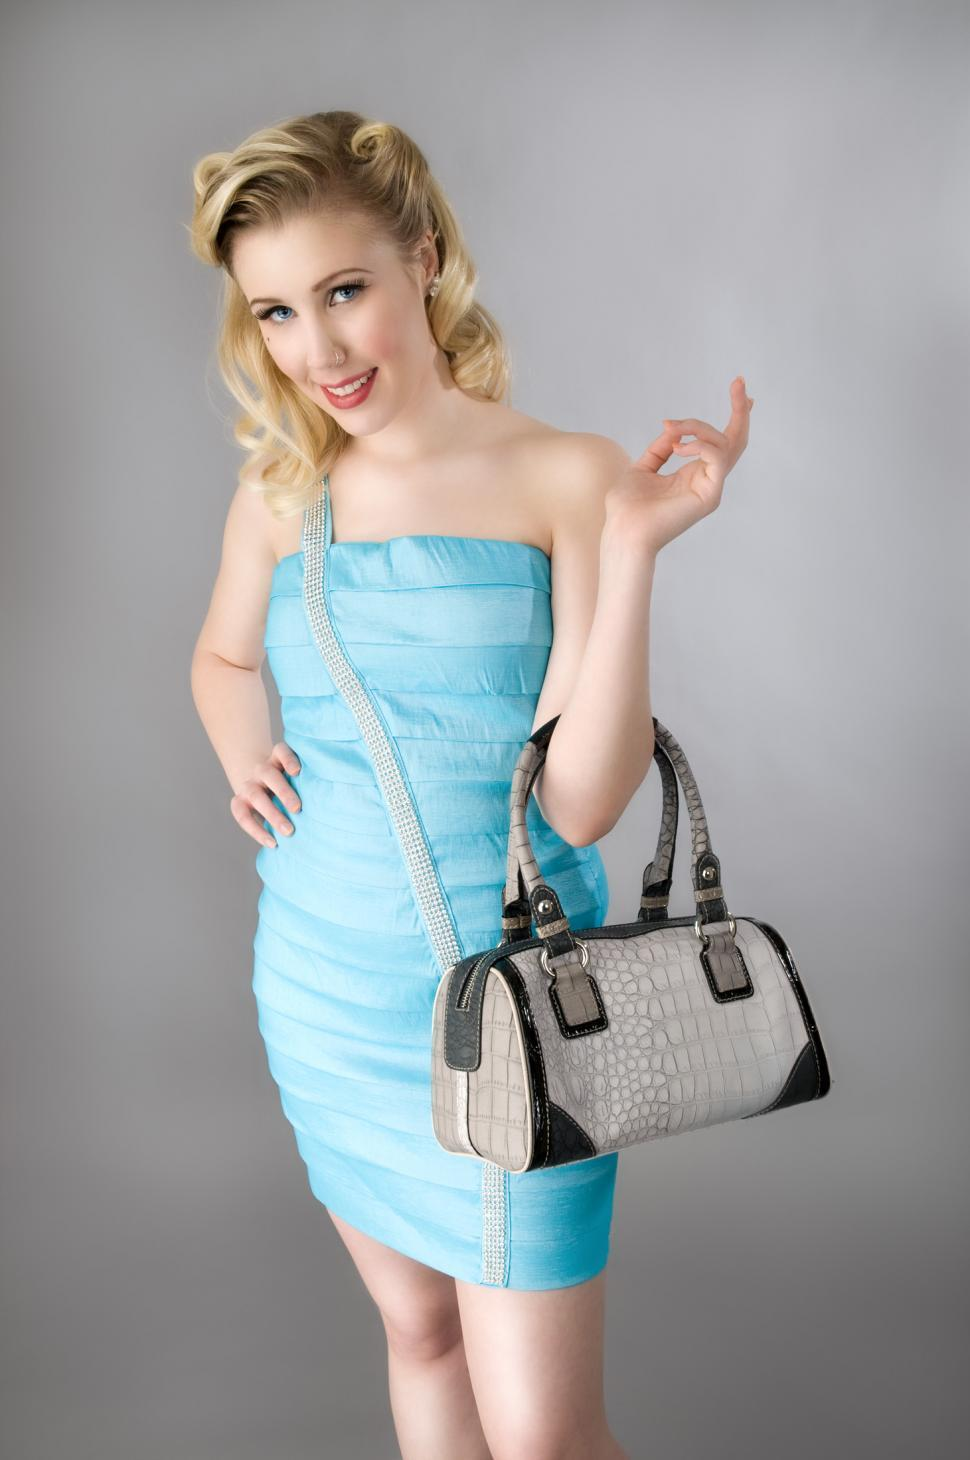 Download Free Stock HD Photo of Young woman with handbag Online